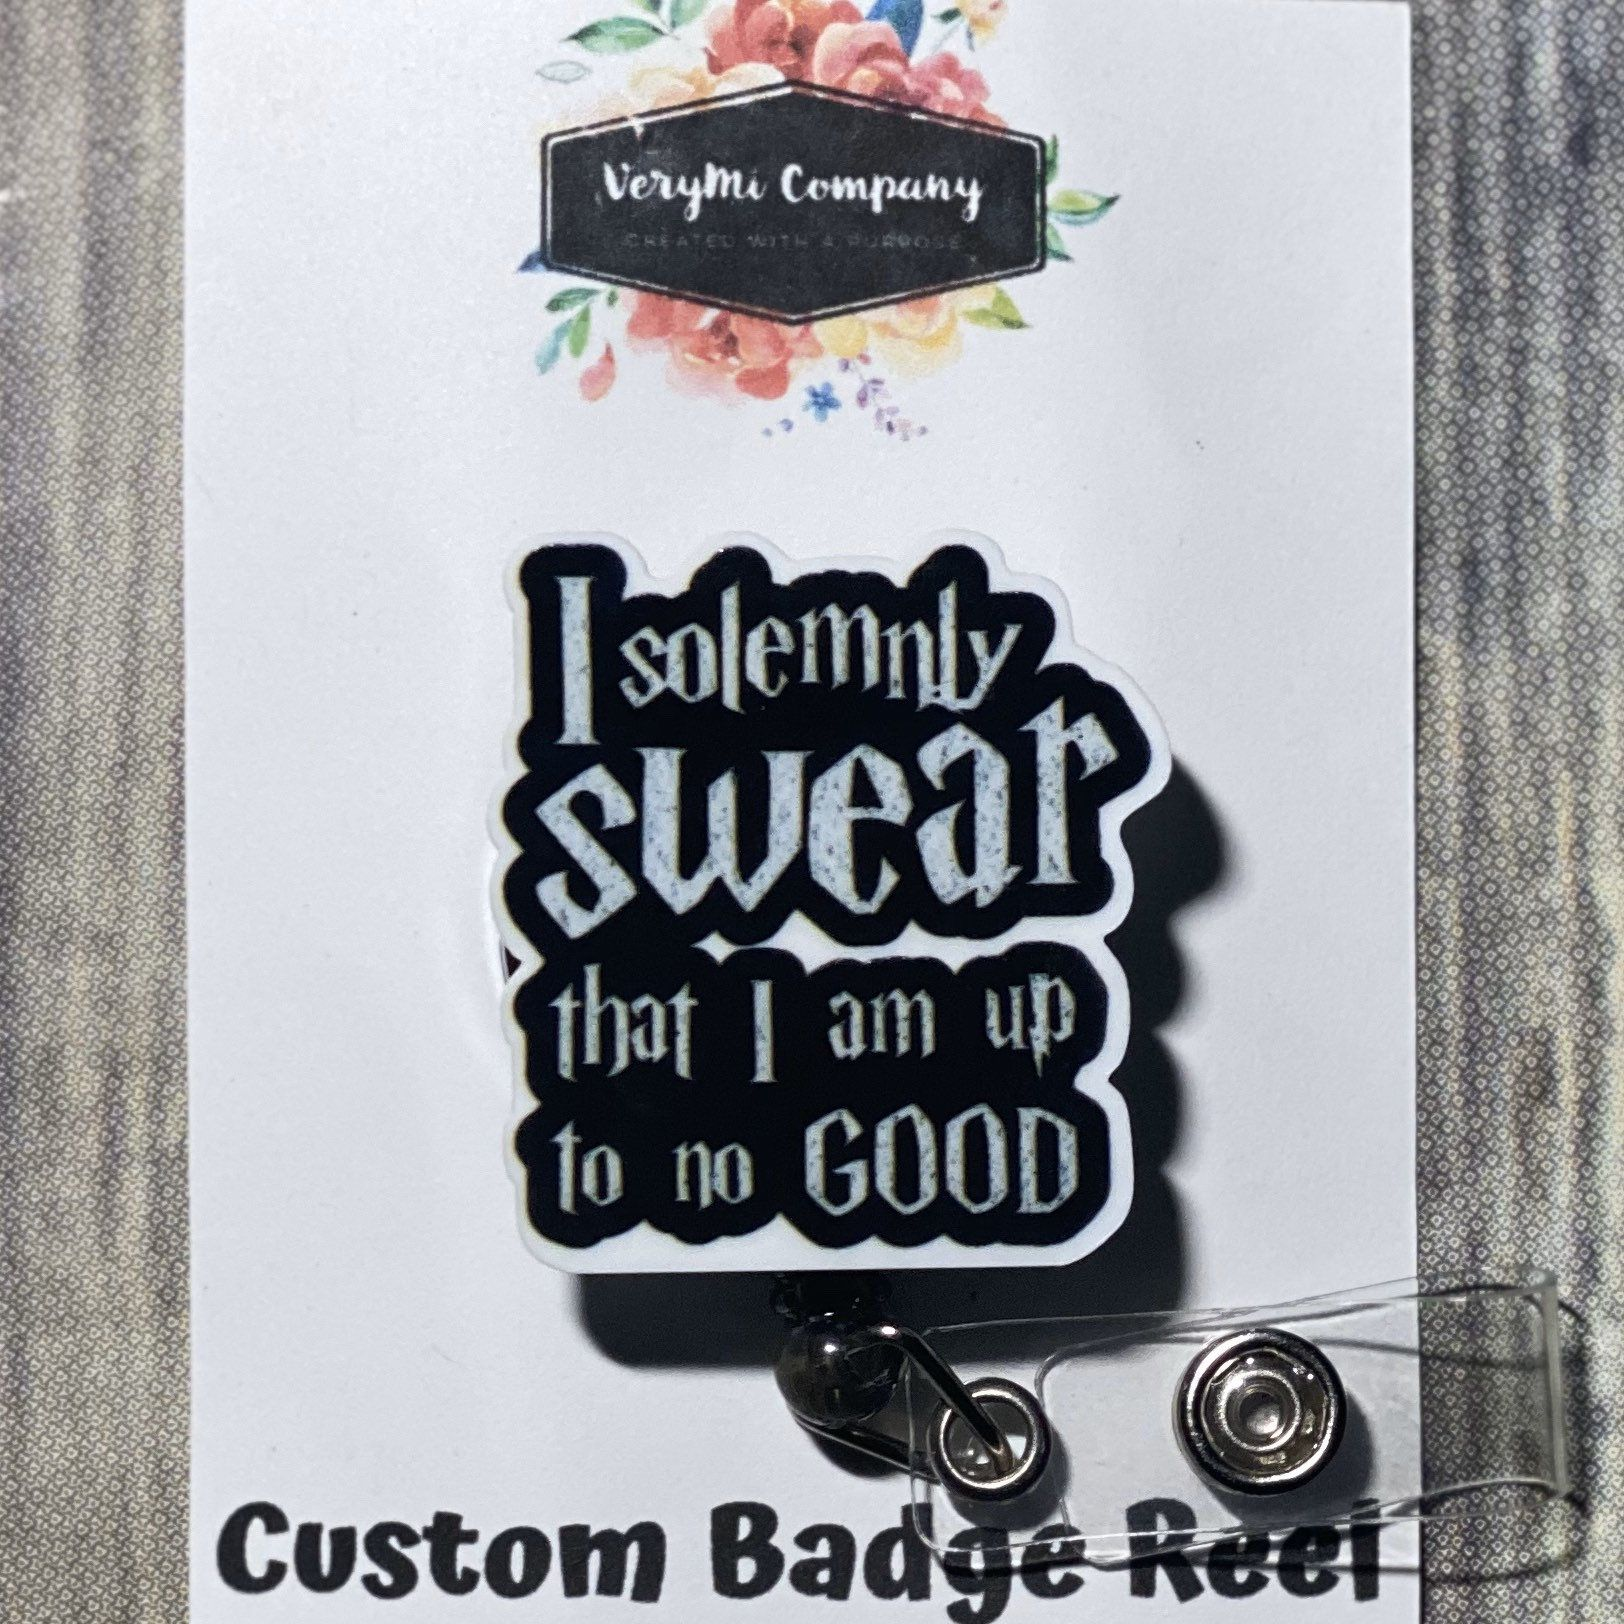 Harry Potter I solemnly swear that I am up to no good badge